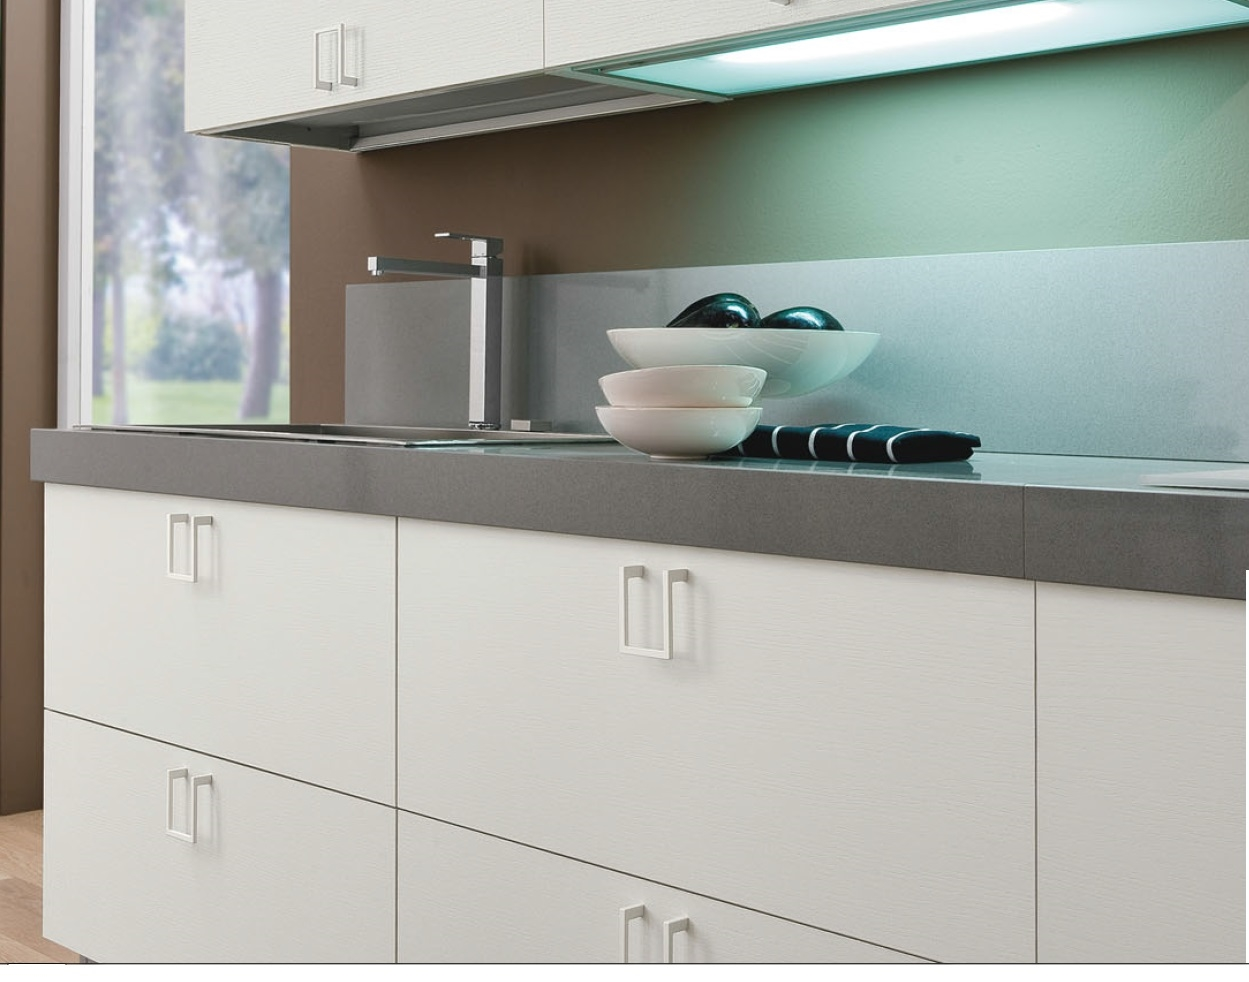 Cucine con isola mondo convenienza for Cucina sofia mondo convenienza